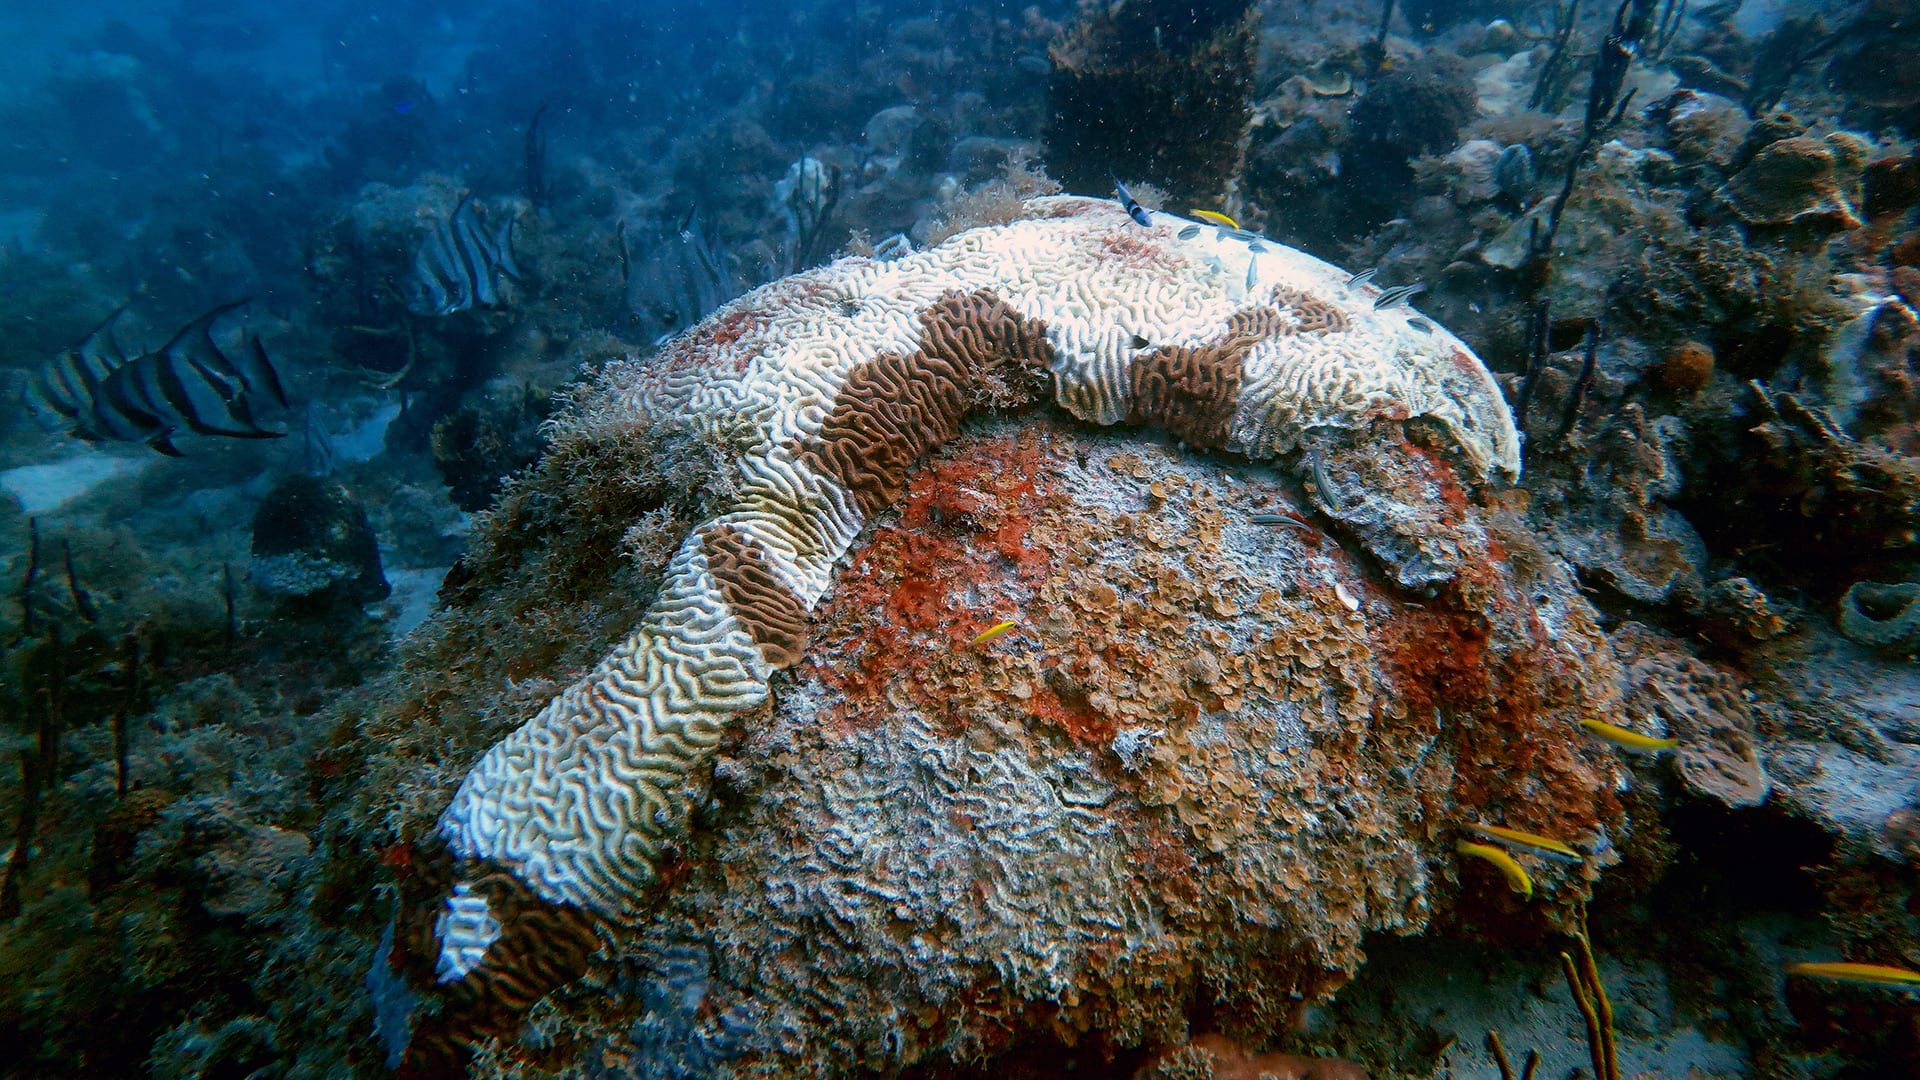 Brain corals in the U.S. Virgin Islands, like the one shown here, are exhibiting the same types of large, stark-white lesions as diseased corals in Florida. Photo by Marilyn Brandt, University of the Virgin Islands